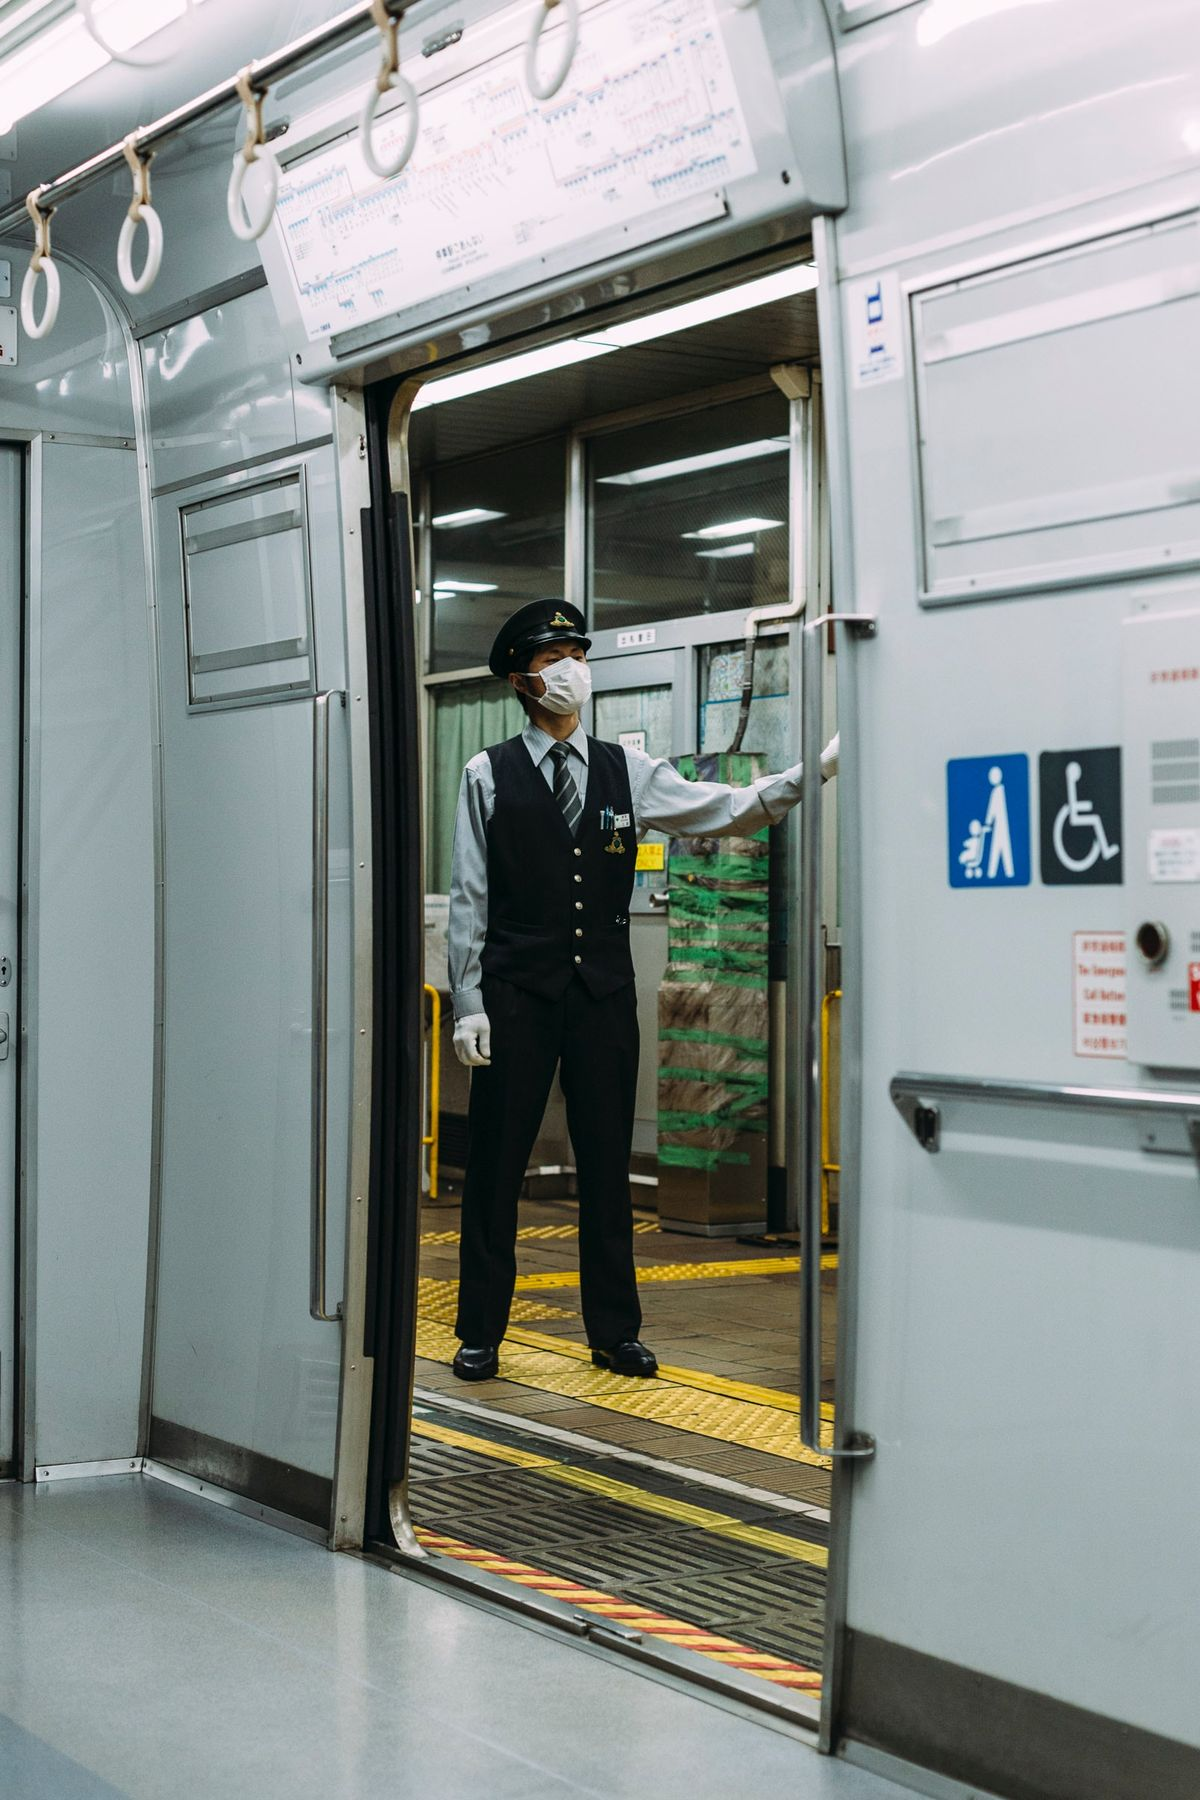 person standing in public transportation with a face mask